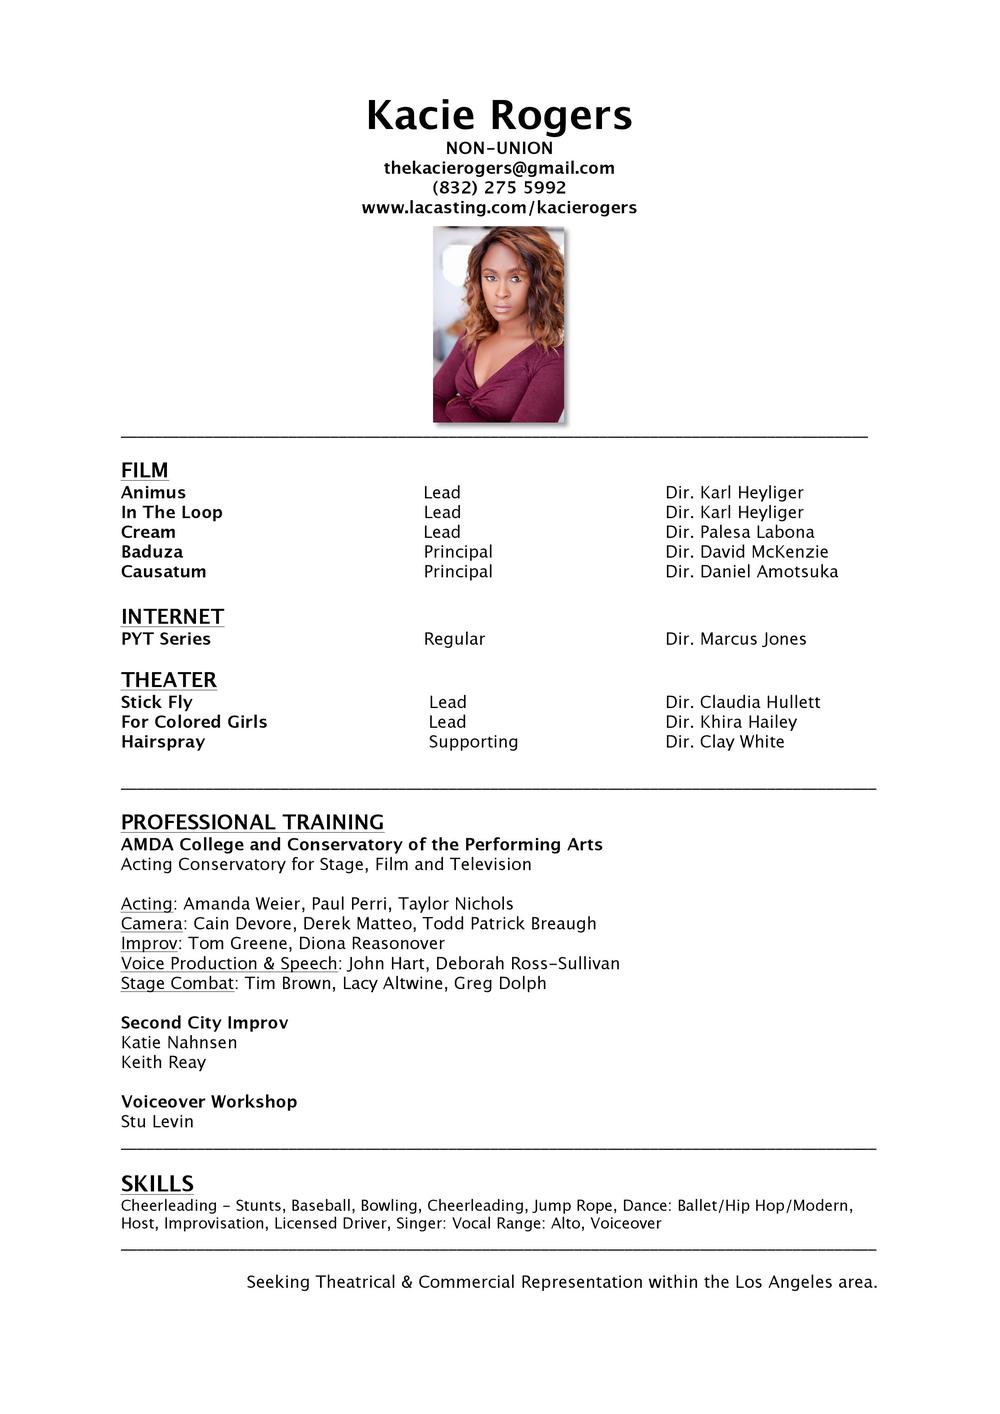 Kacie Rogers The NEW Resume Word-page-001.jpg